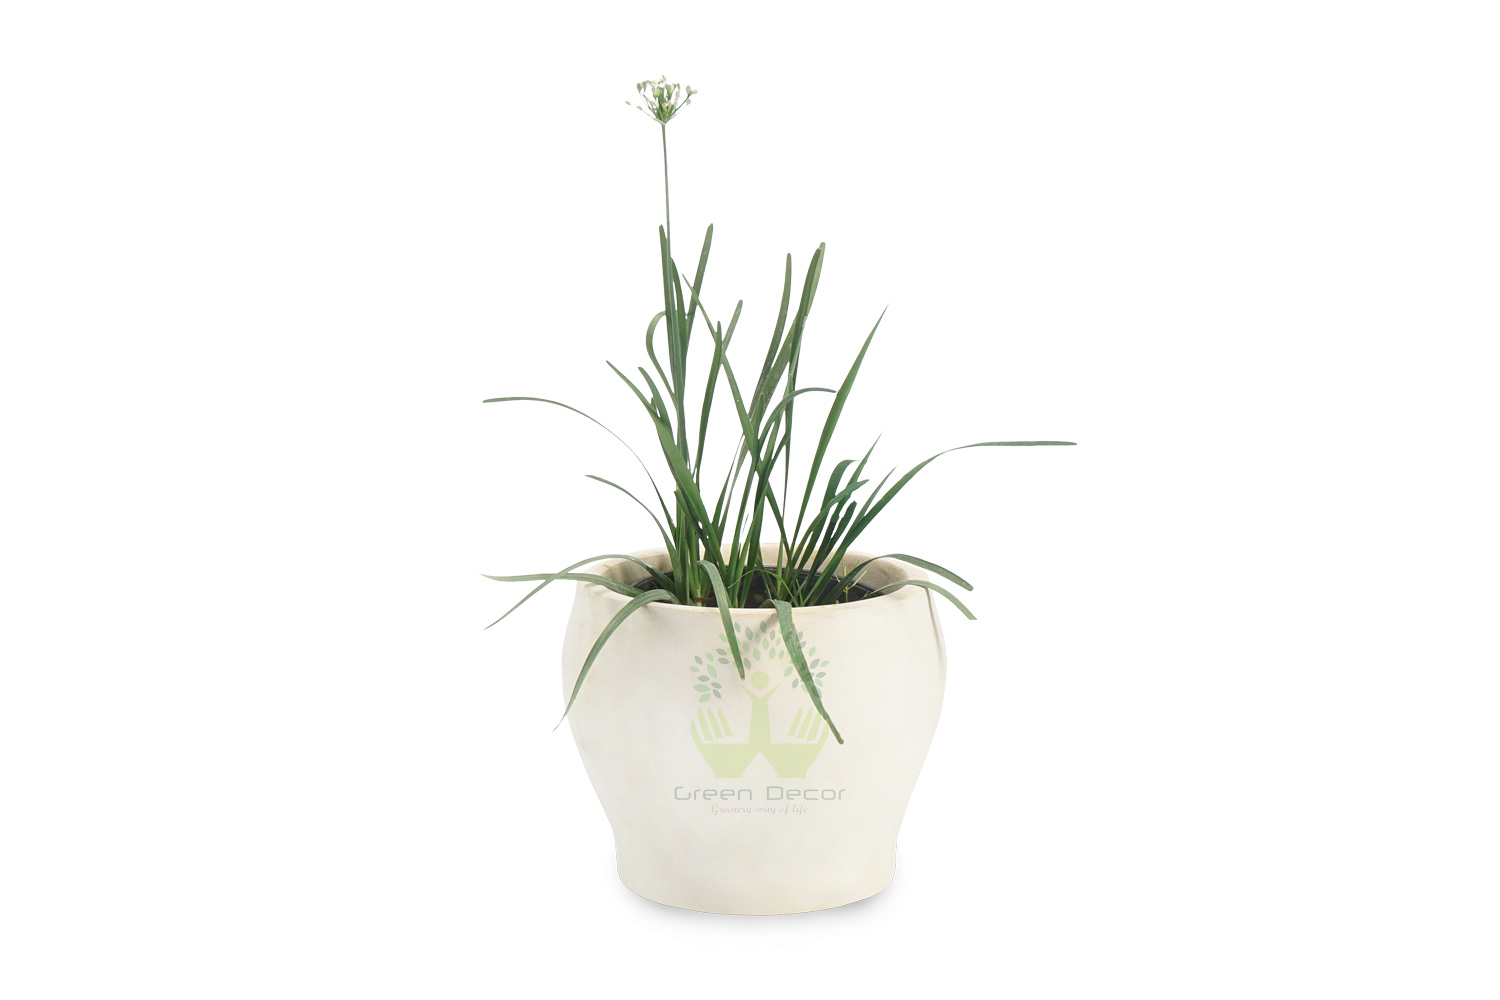 Buy Chives Plants , White Pots and seeds in Delhi NCR by the best online nursery shop Greendecor.